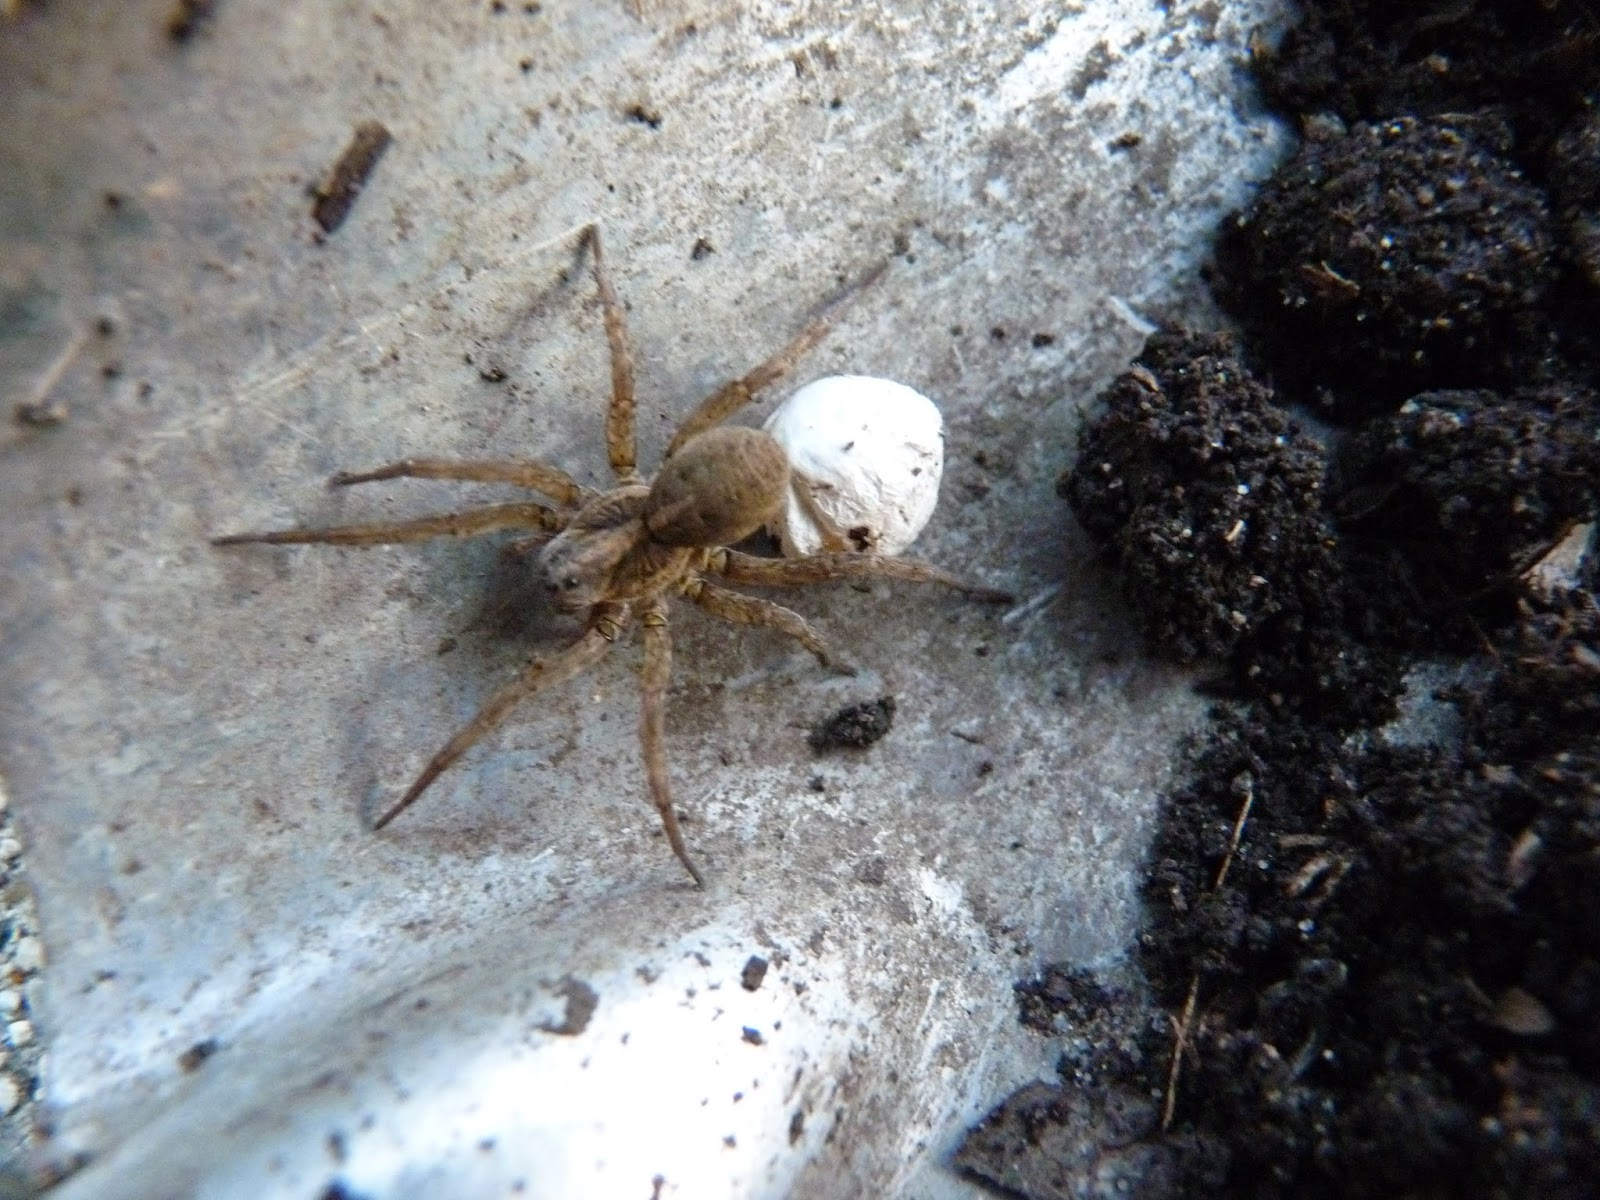 Brown recluse spider - Wikipedia